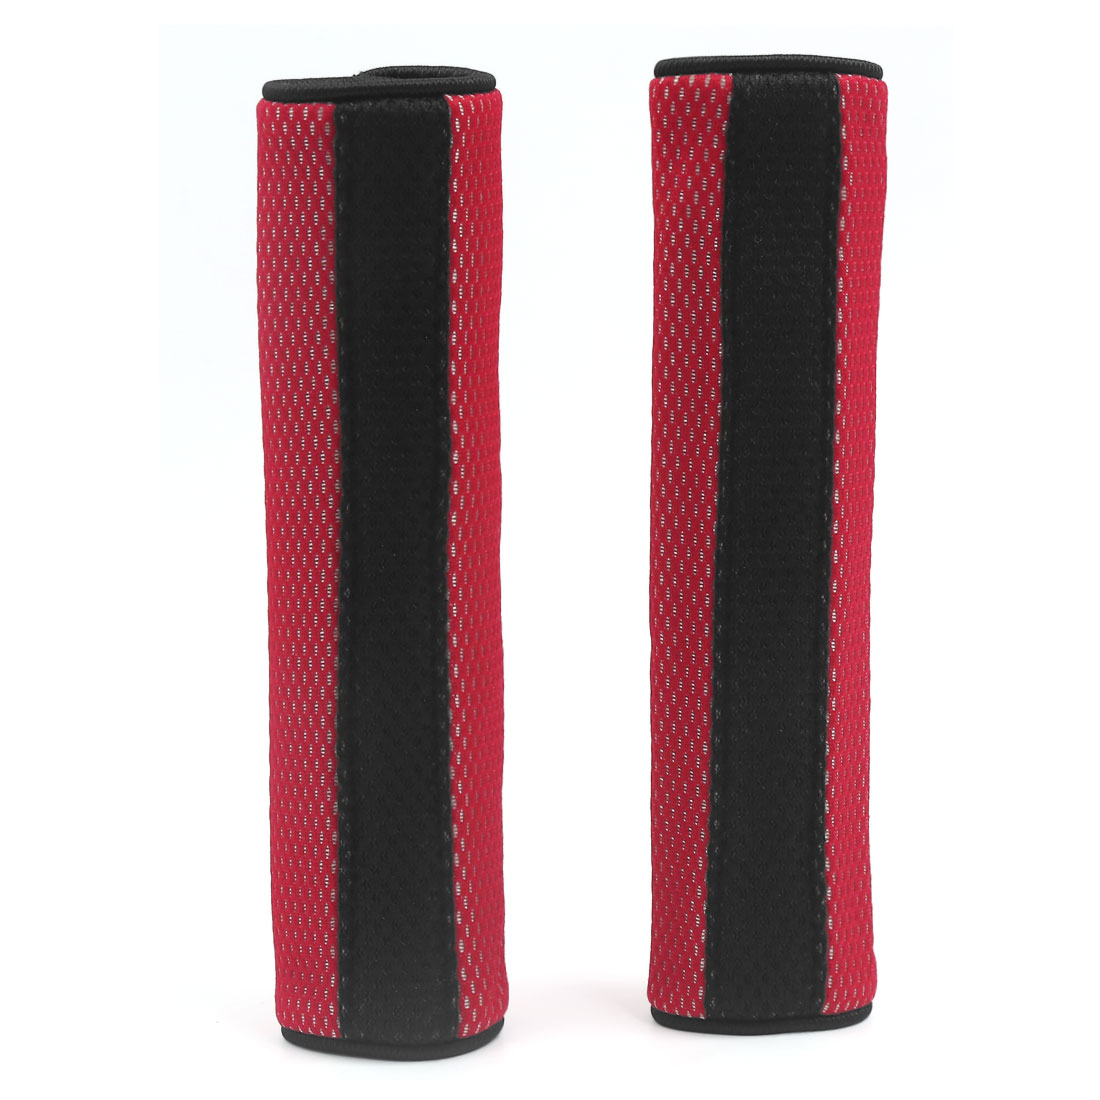 Pair Sponge Padded Hook Loop Fastener Car Seat Belt Cover Shoulder Cushion Pad